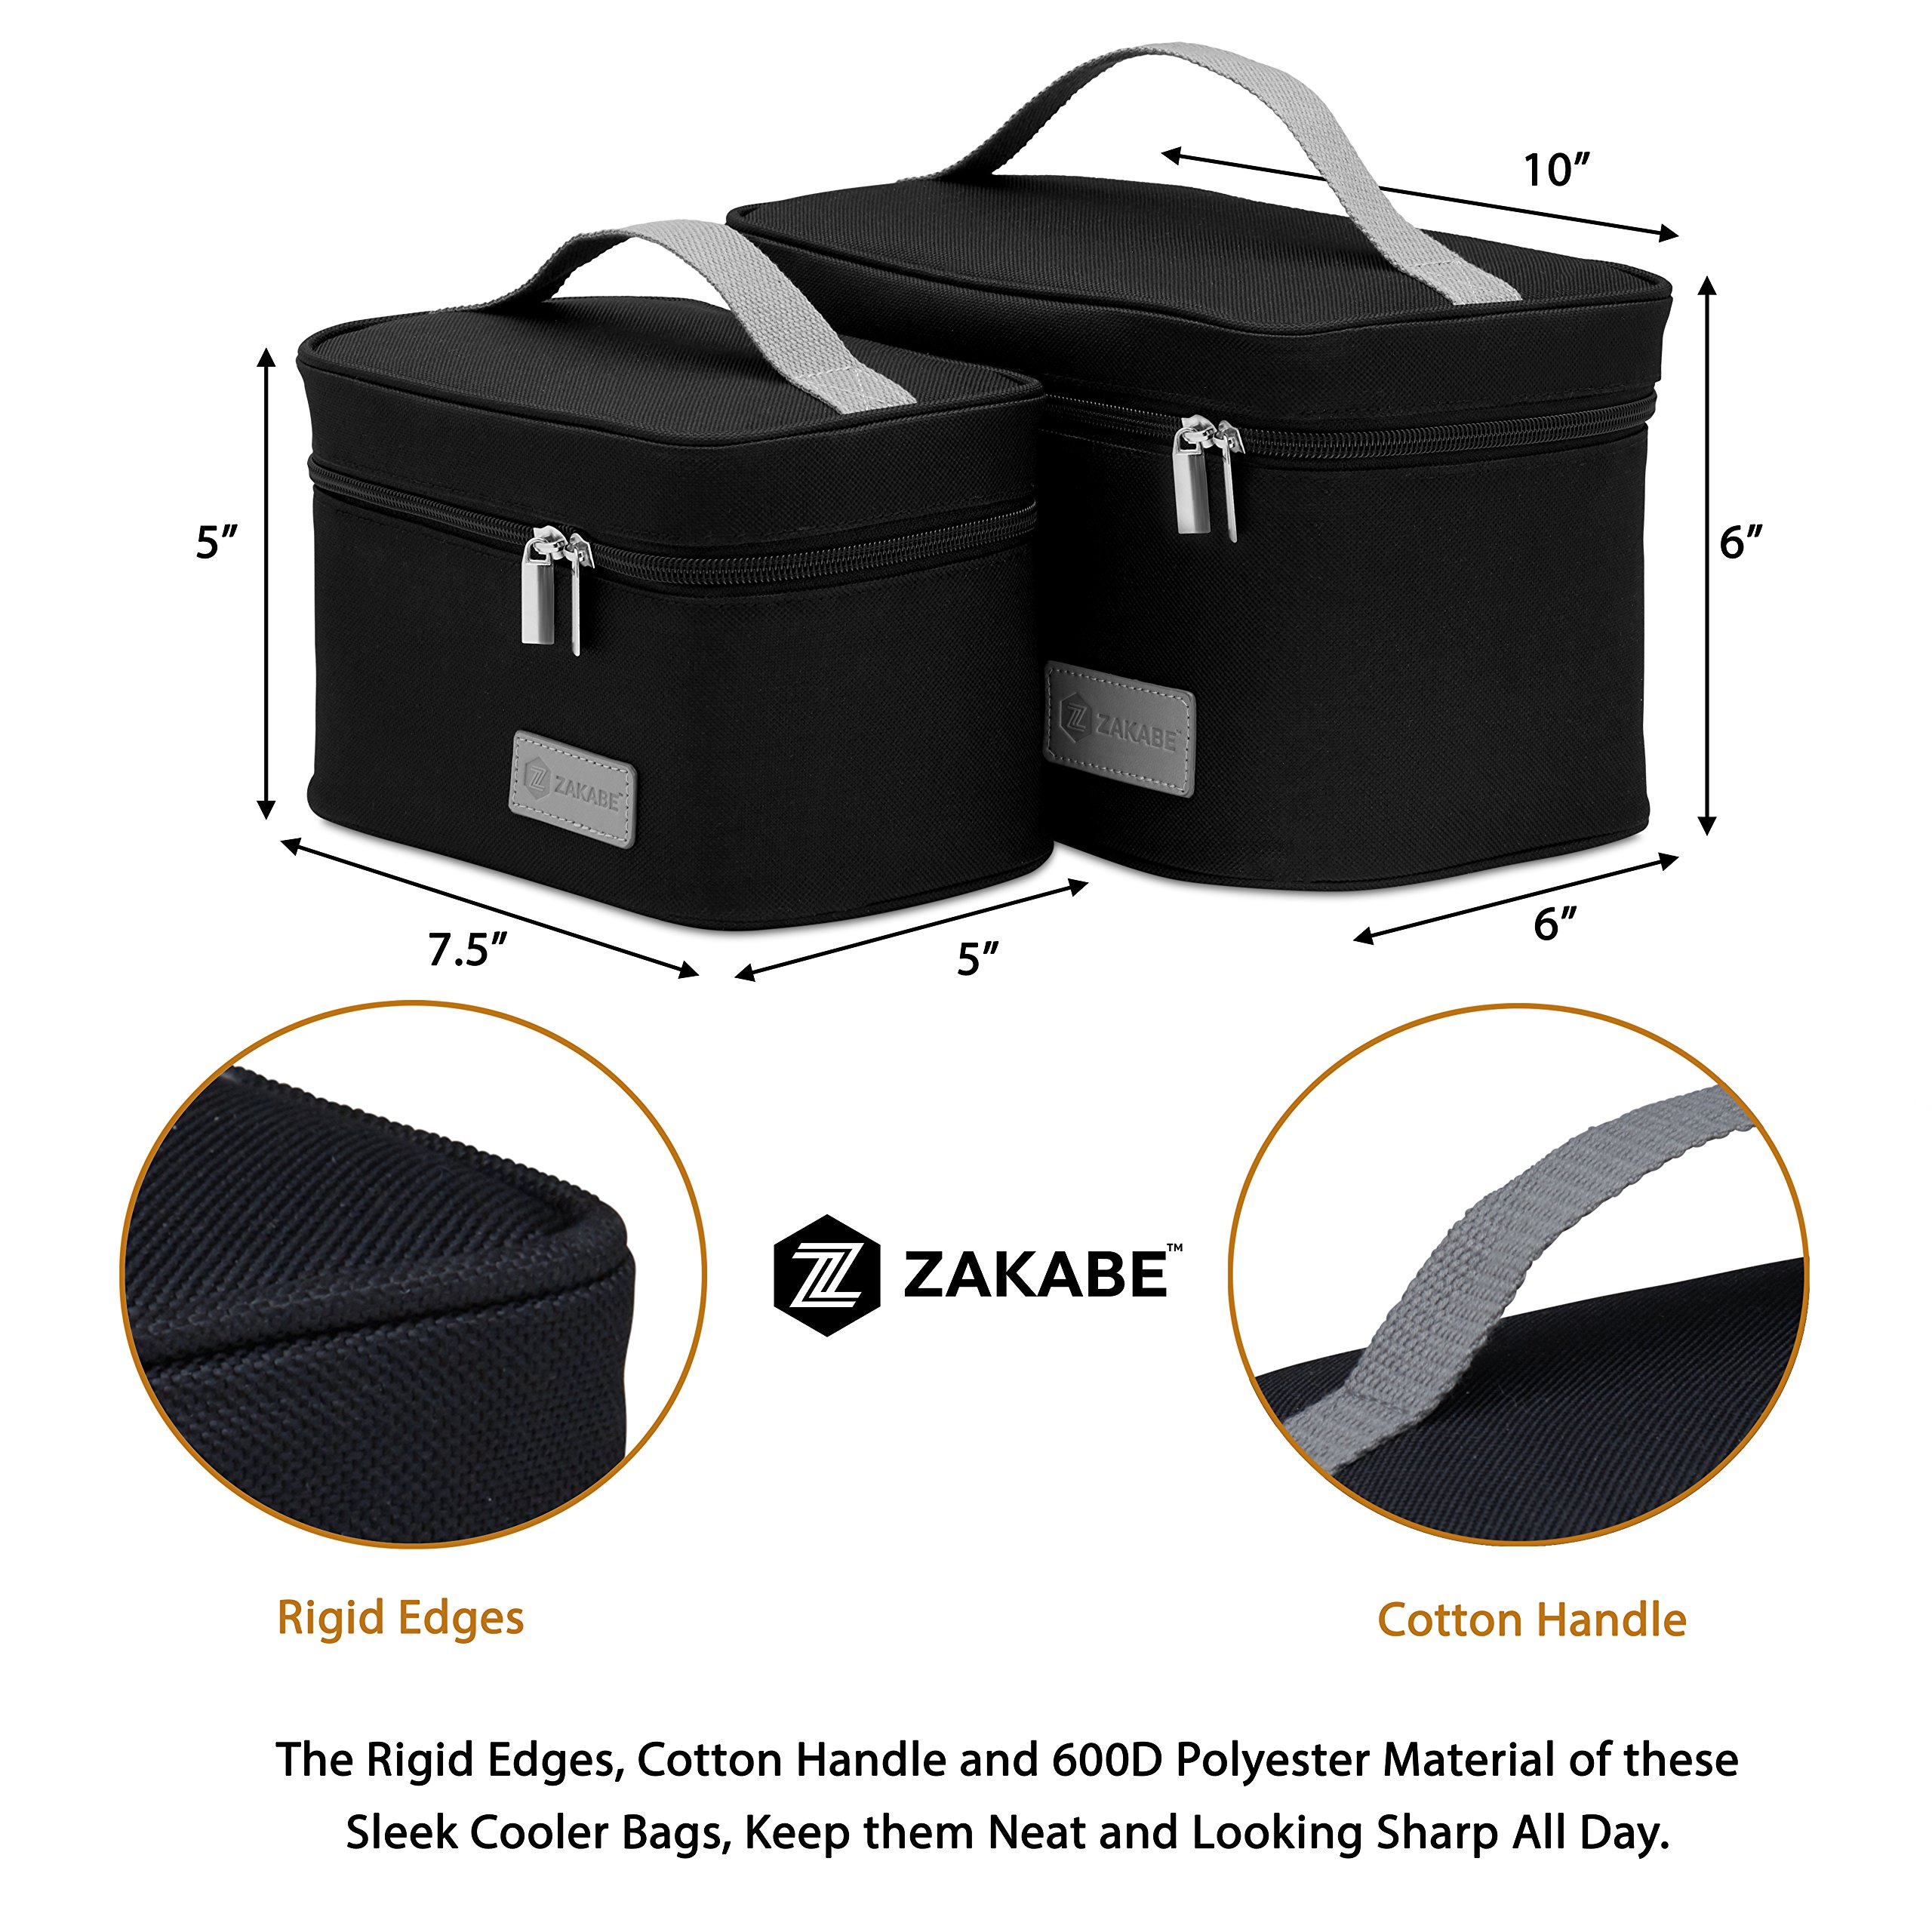 Zakabe Lunch Bag, Lunch Box, Cooler Bag, Set of 2 Sizes, Insulated, for Women, Kids, Adults, Men, Work or School - Black by Zakabe (Image #3)